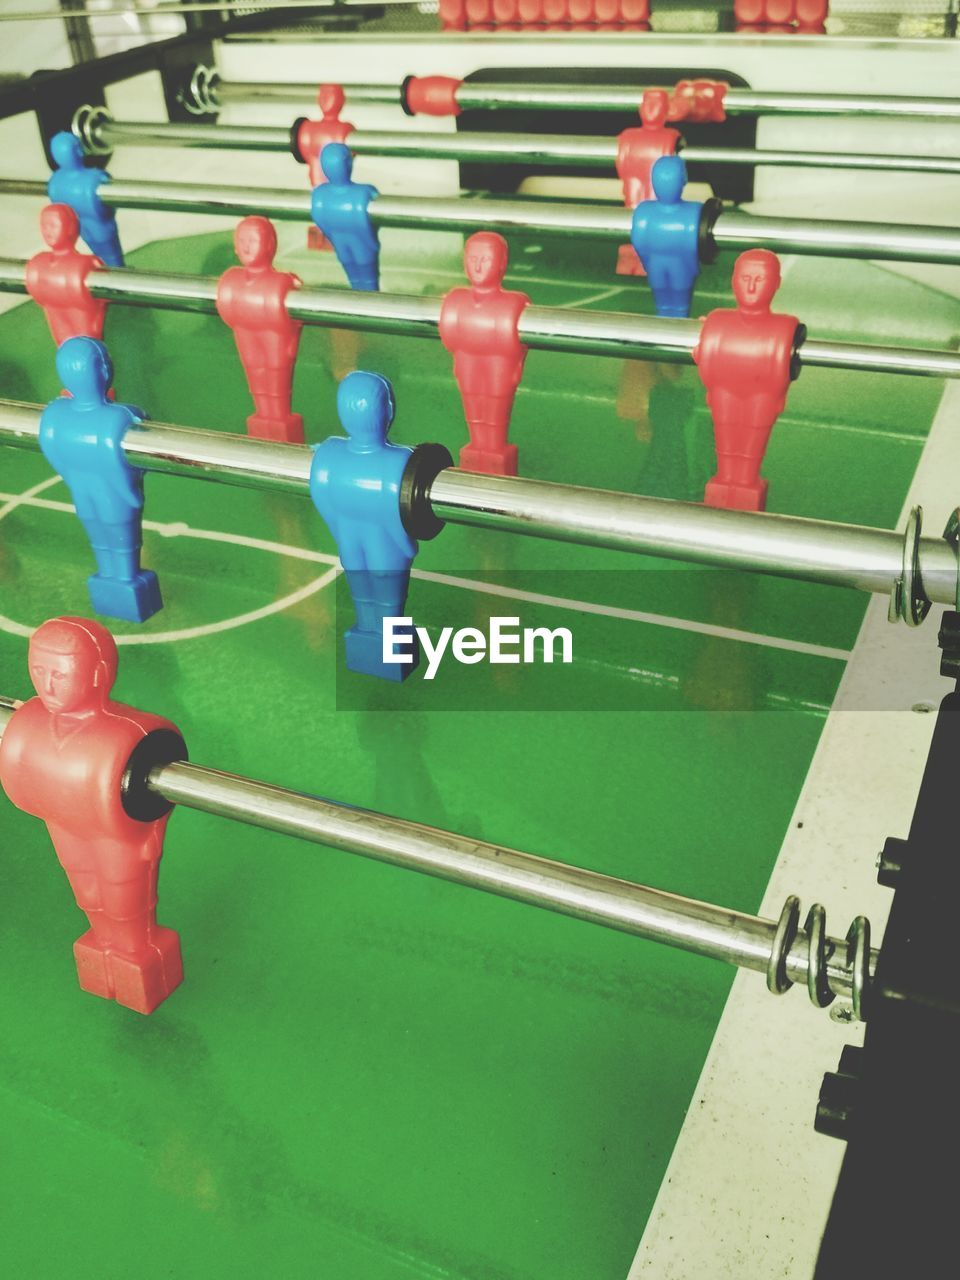 teamwork, leisure activity, football, sport, model, in a row, competition, green color, soccer, leisure games, challenge, figurine, playing, activity, cooperation, togetherness, sports team, day, outdoors, people